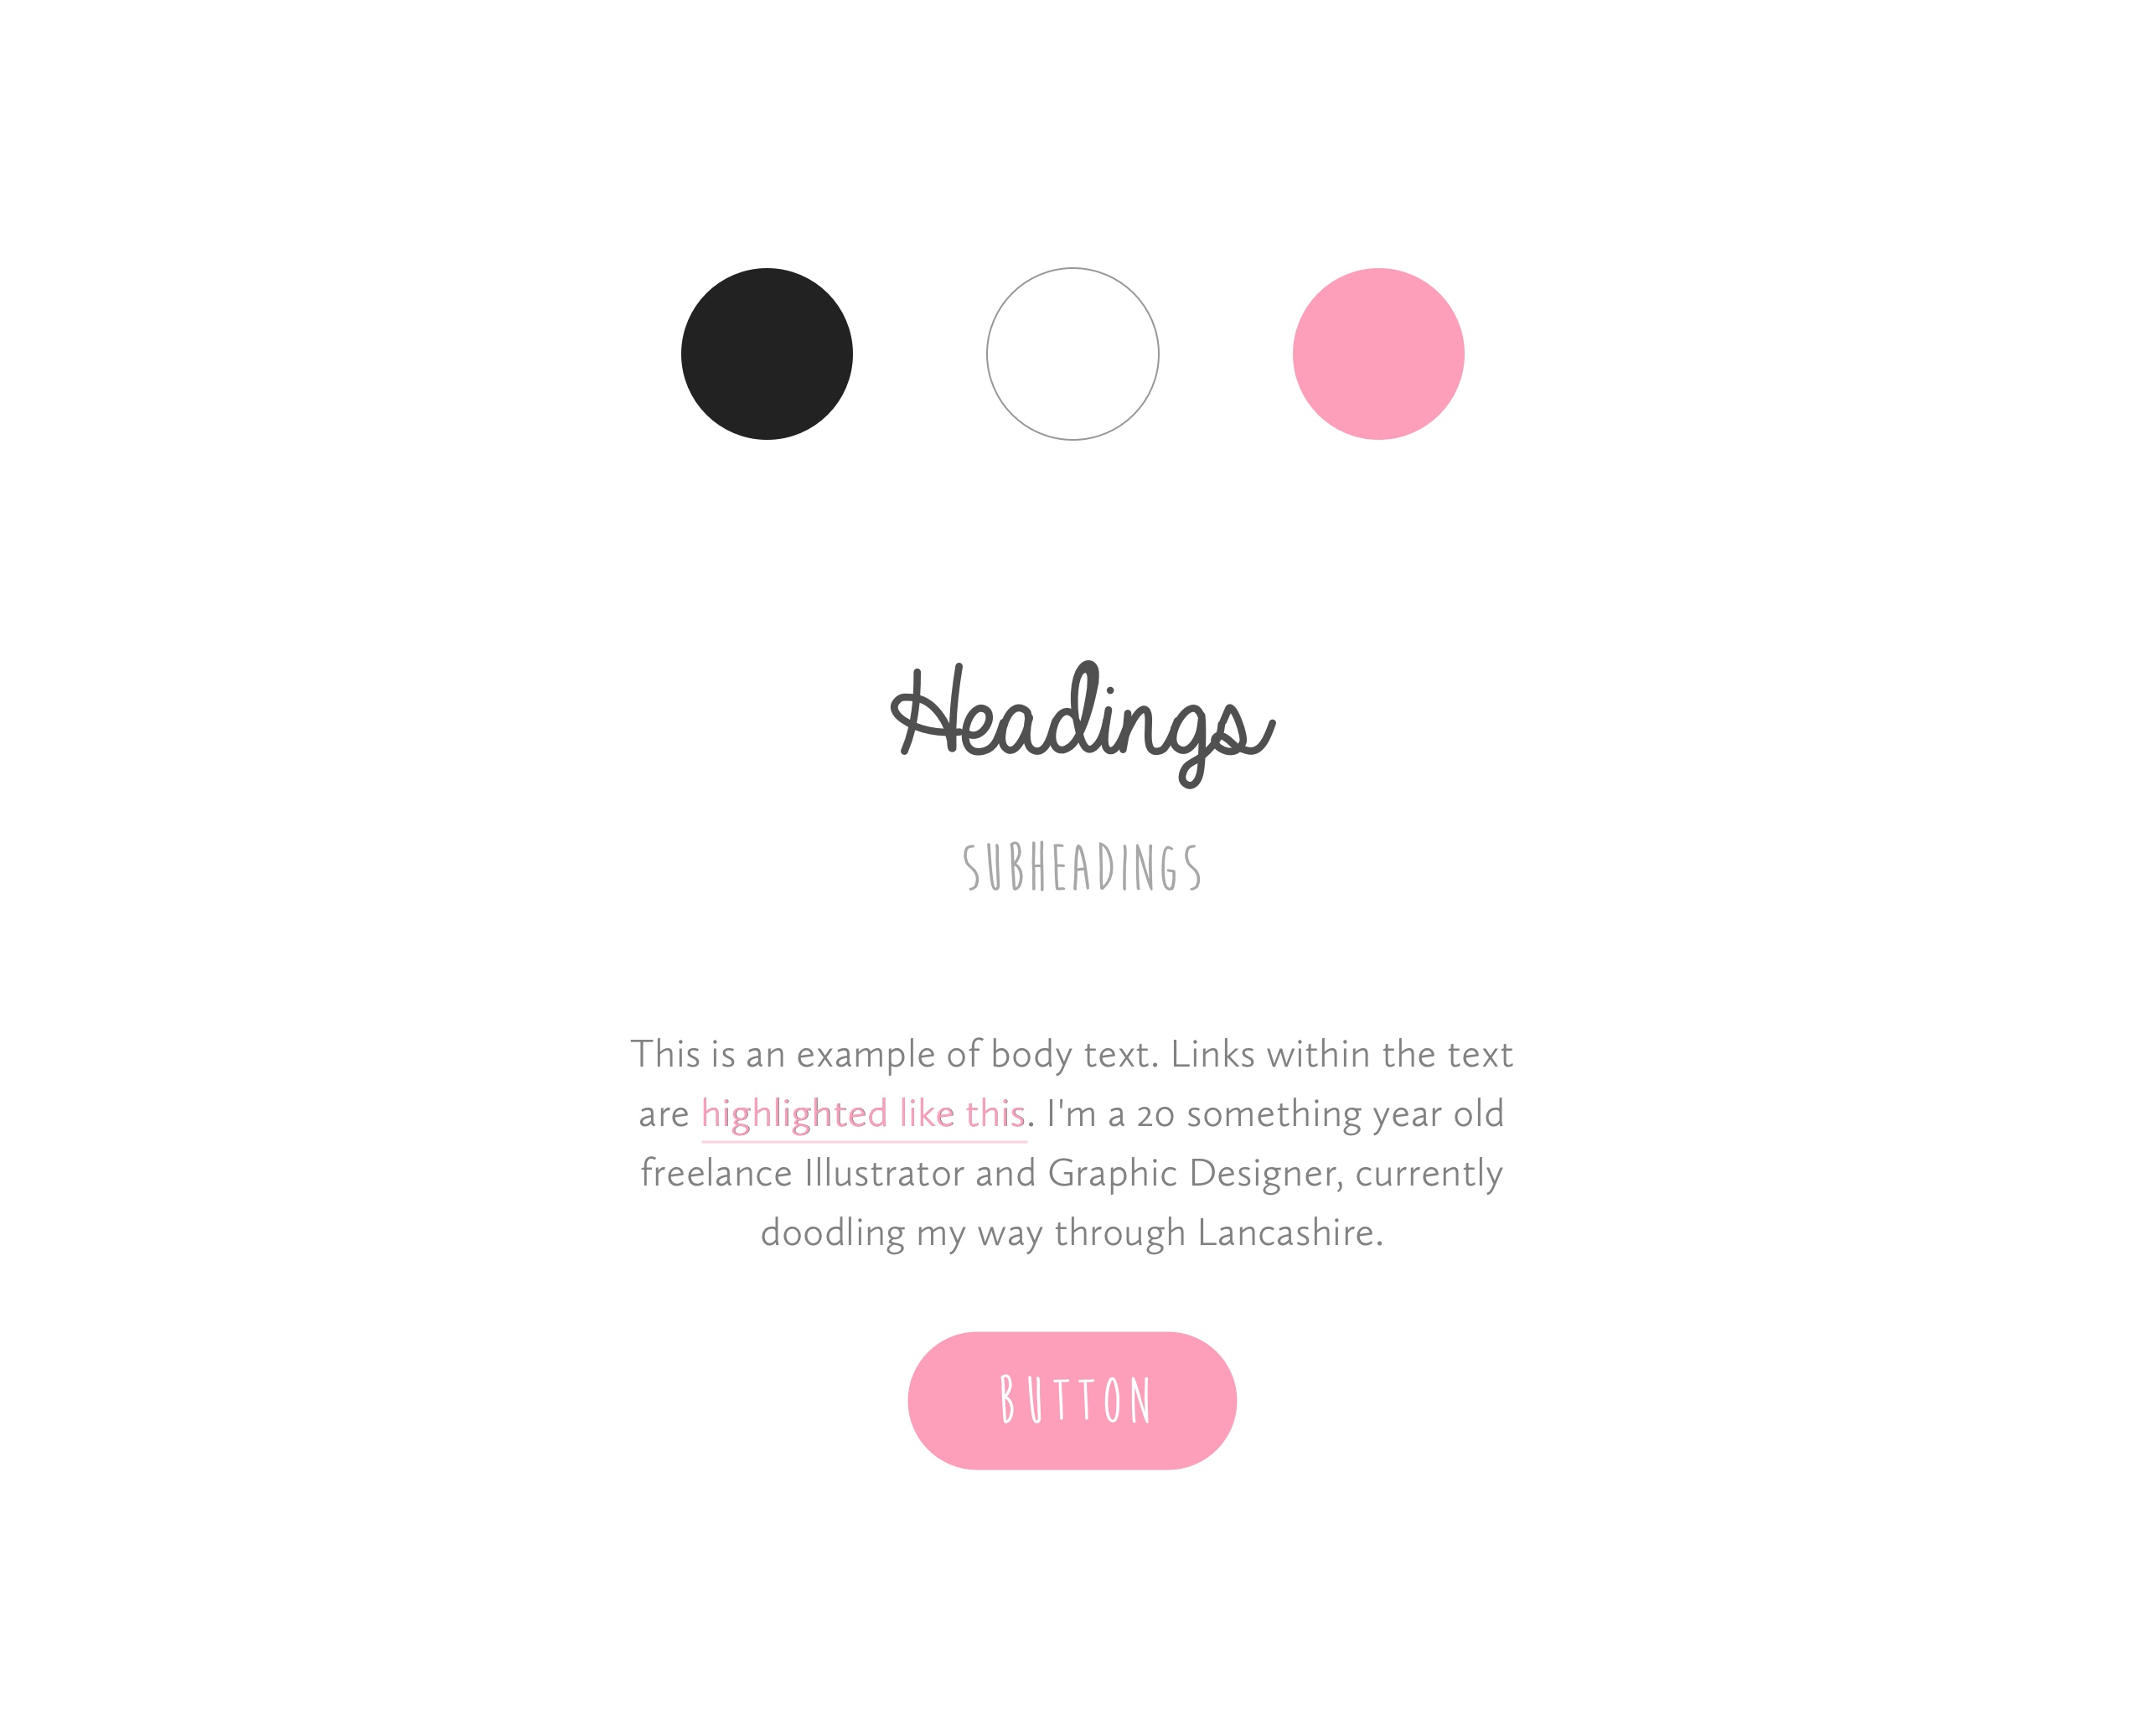 Style guide and website design for Kate Illustrate